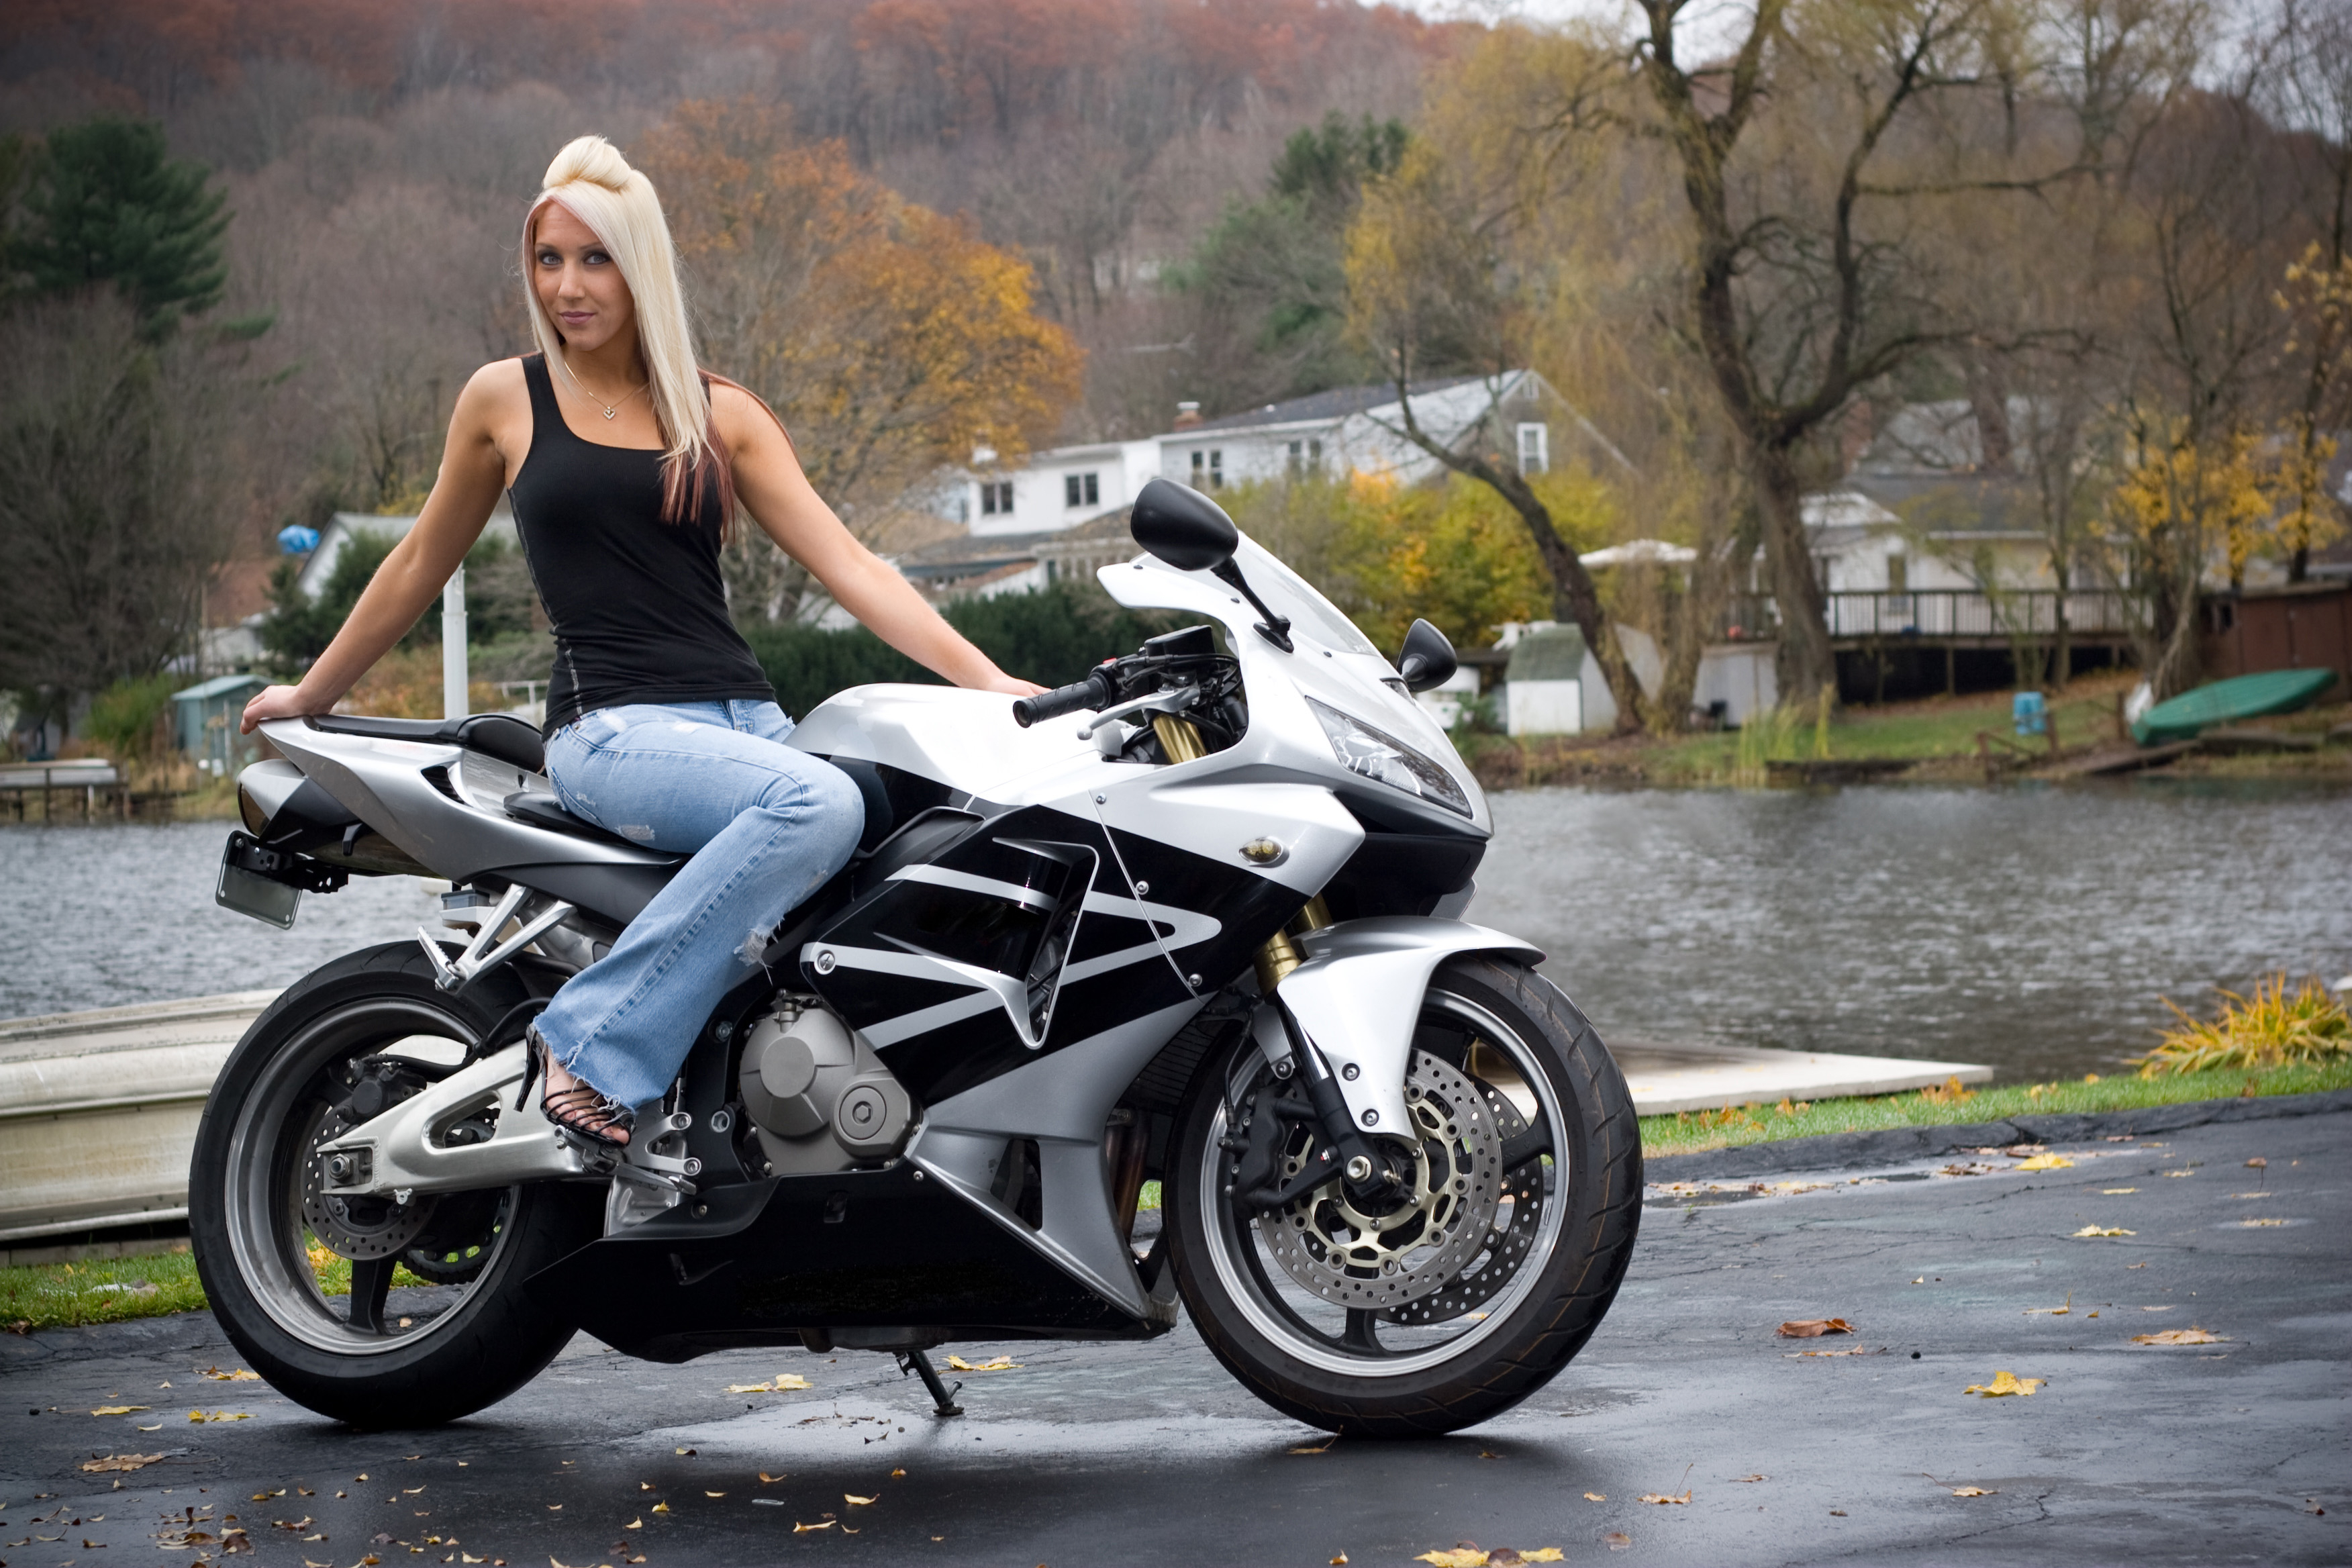 a-pretty-blonde-girl-posing-on-a-motorcy